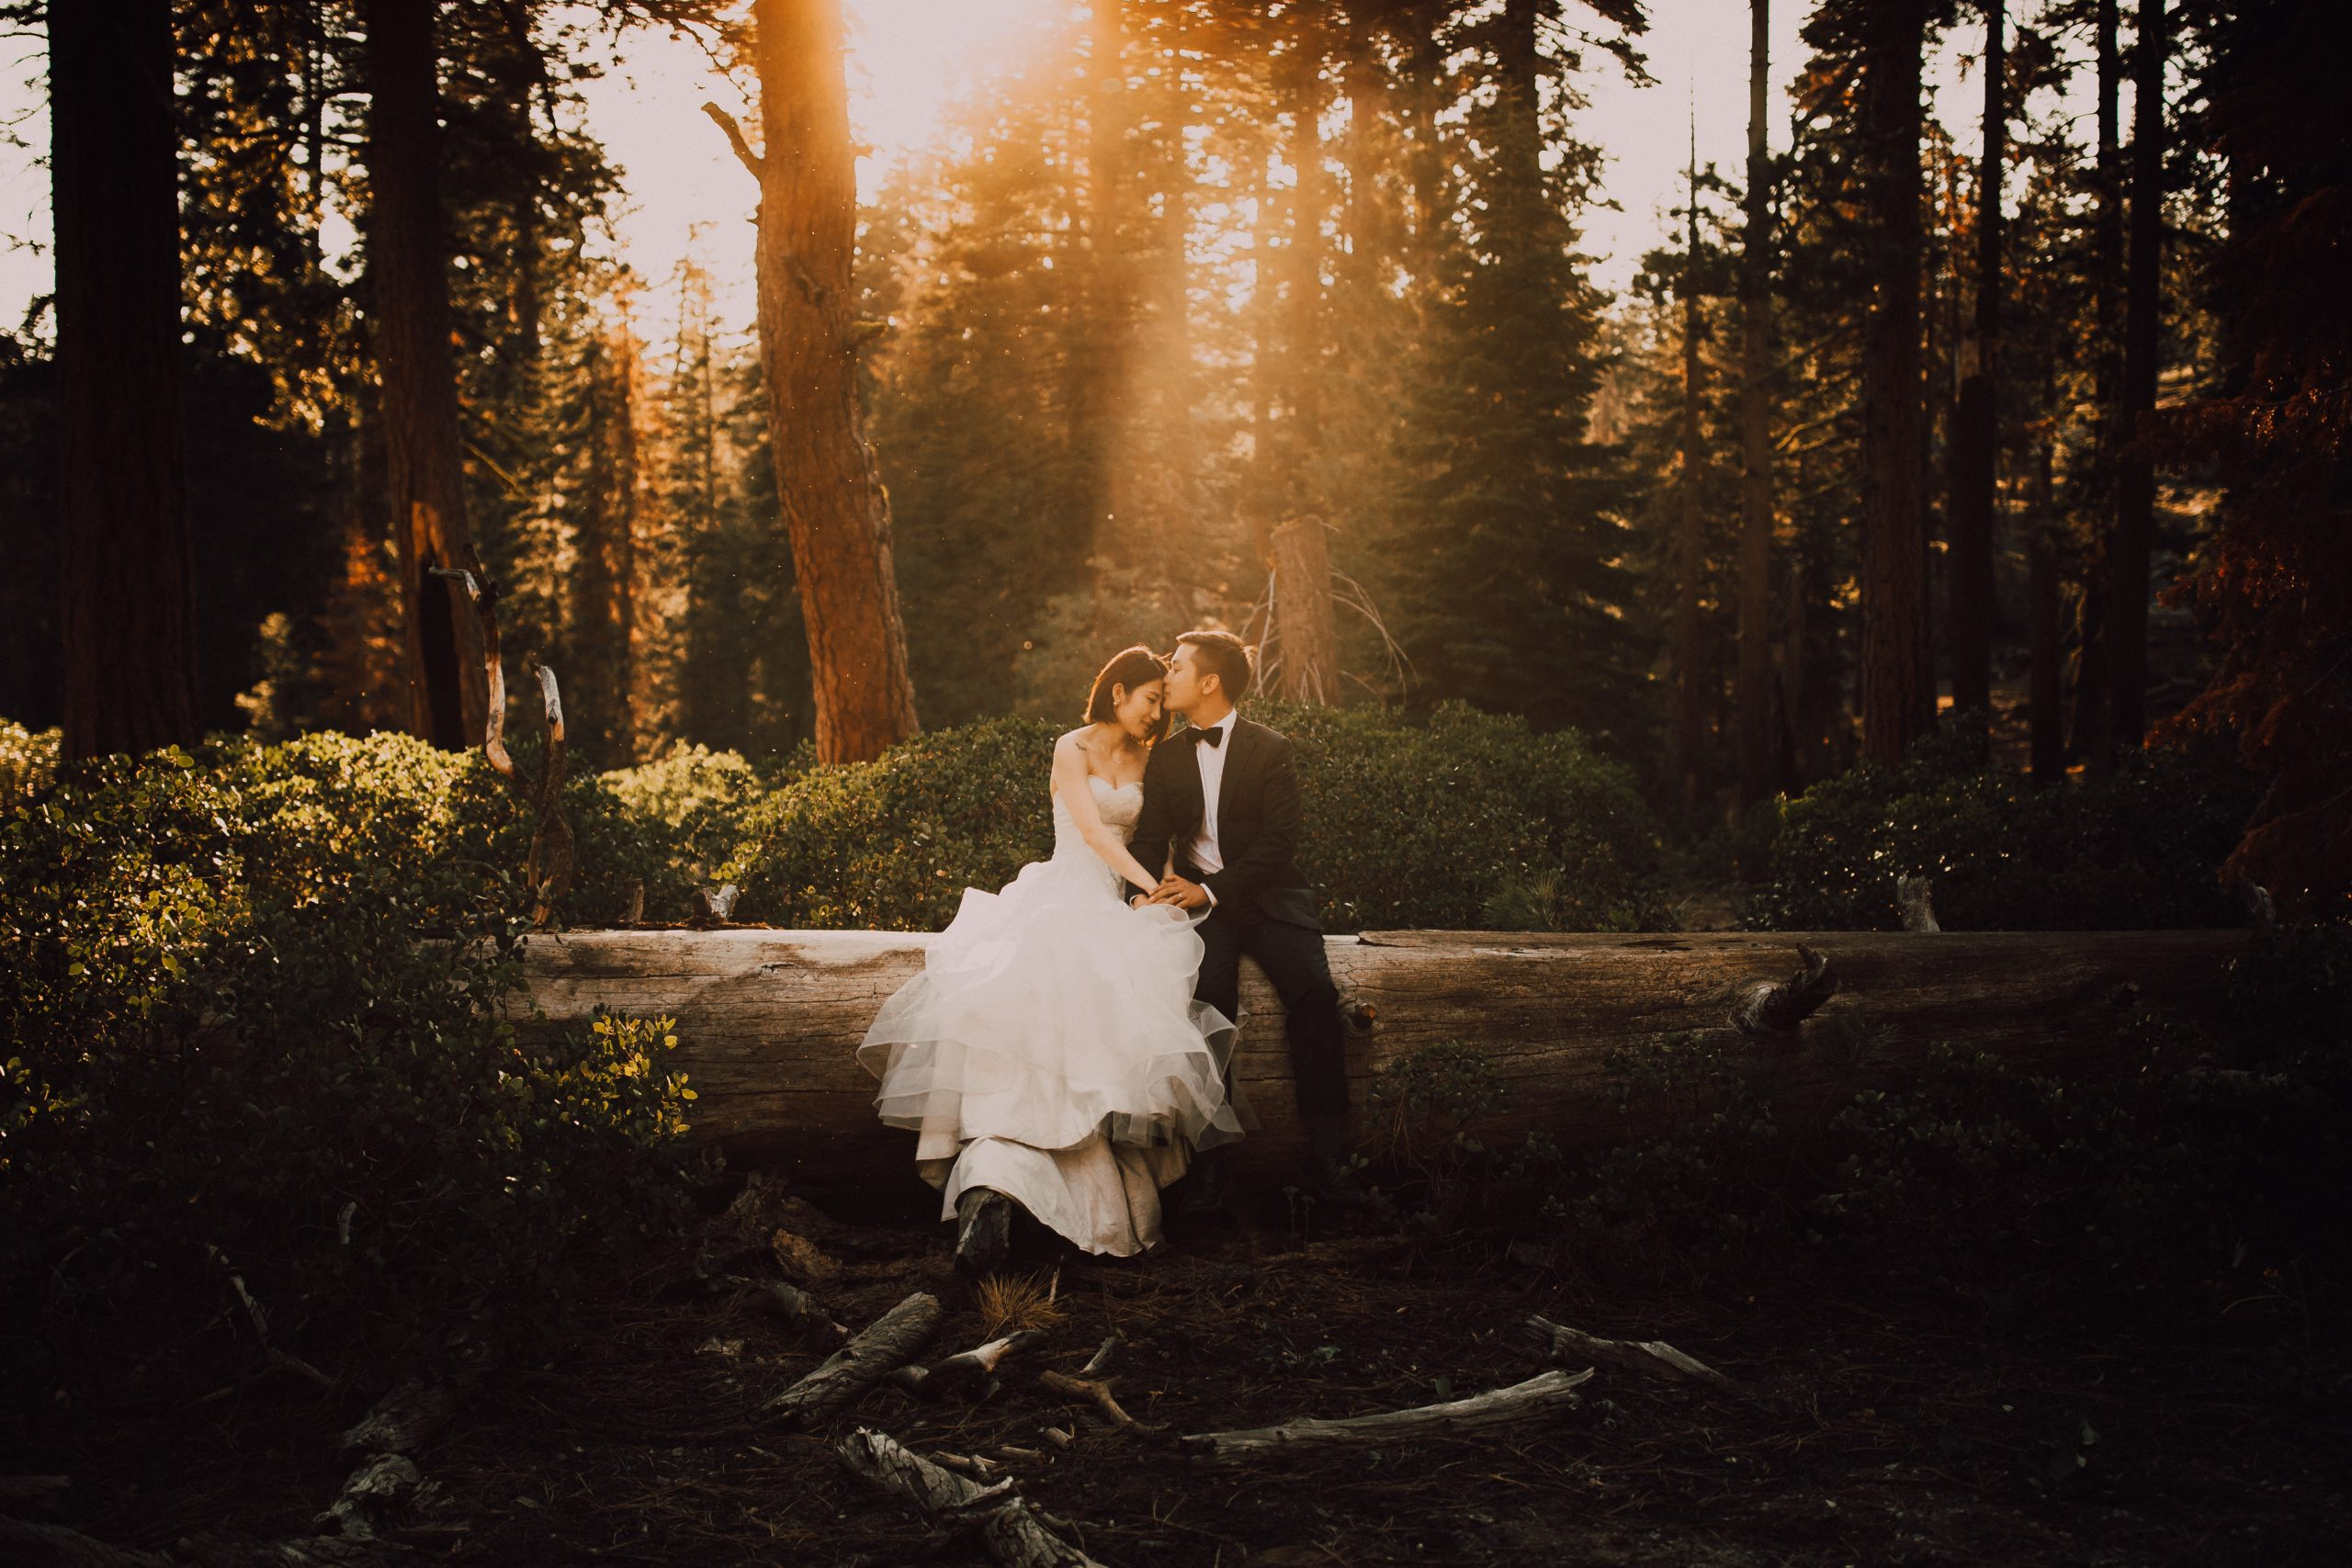 Lightroom Presets for Elopement Photographers - C & A Presets by Cody & Allison